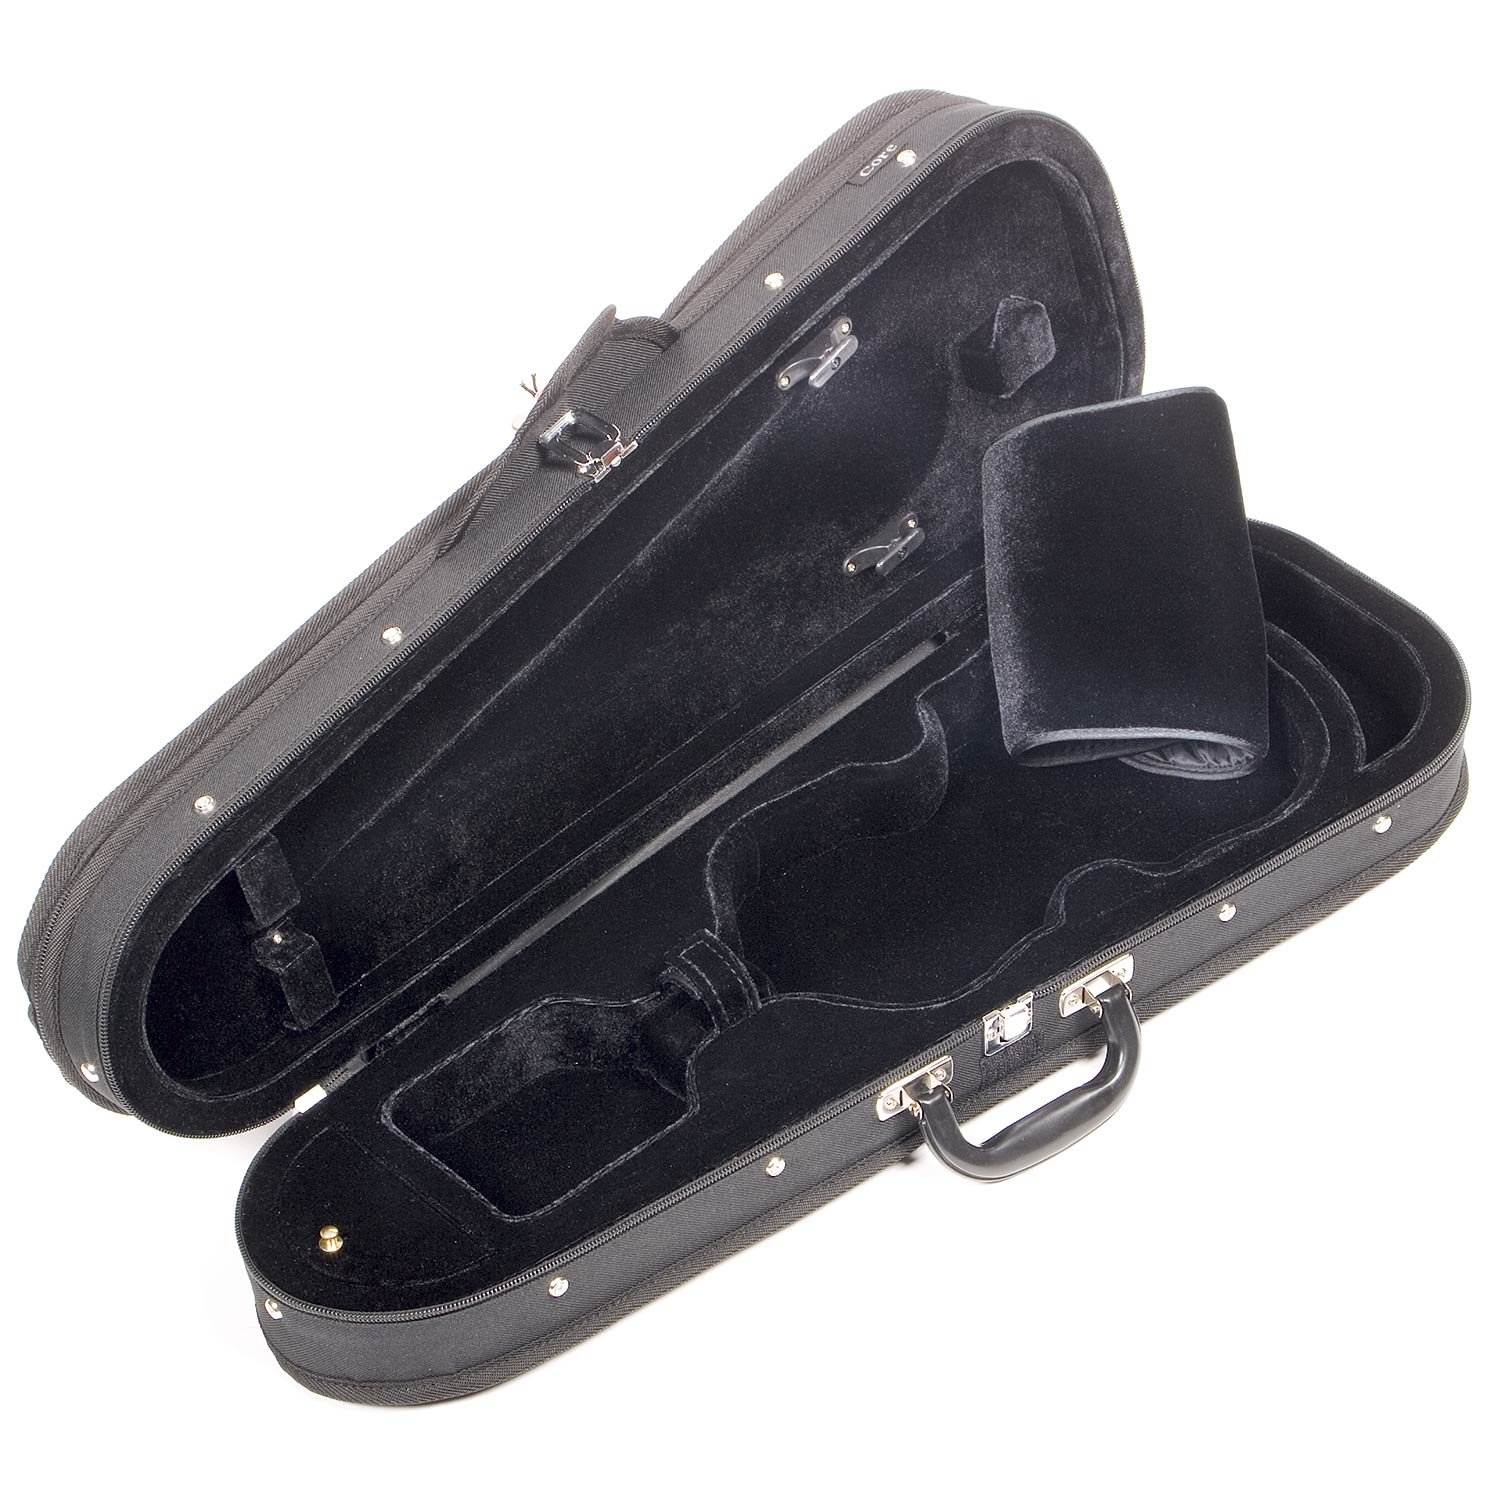 Core CC399 Dart-Shaped 3/4 Violin Case with Black Velvet Interior by Core (Image #2)